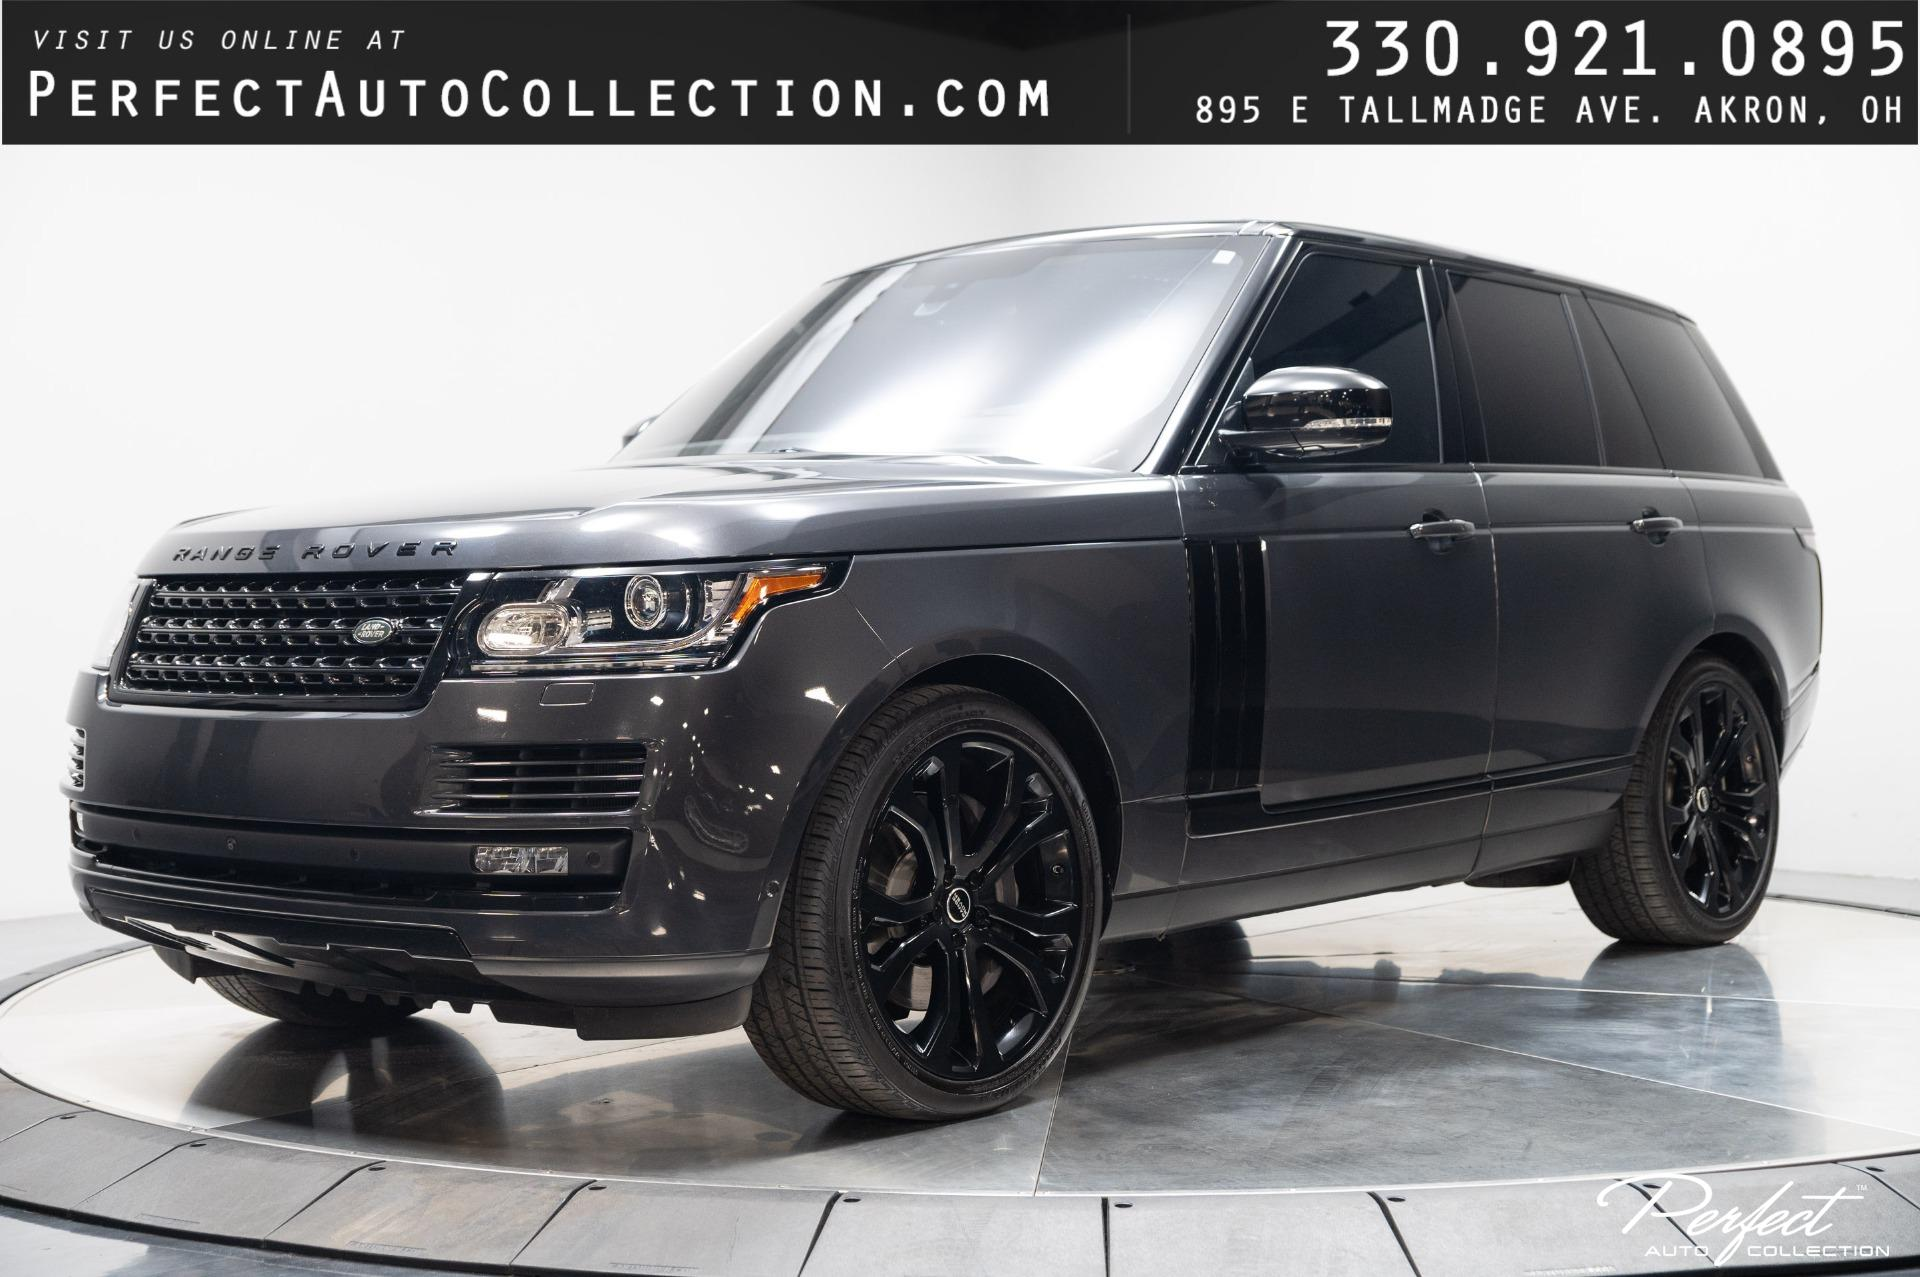 Used 2016 Land Rover Range Rover Supercharged for sale $59,995 at Perfect Auto Collection in Akron OH 44310 1